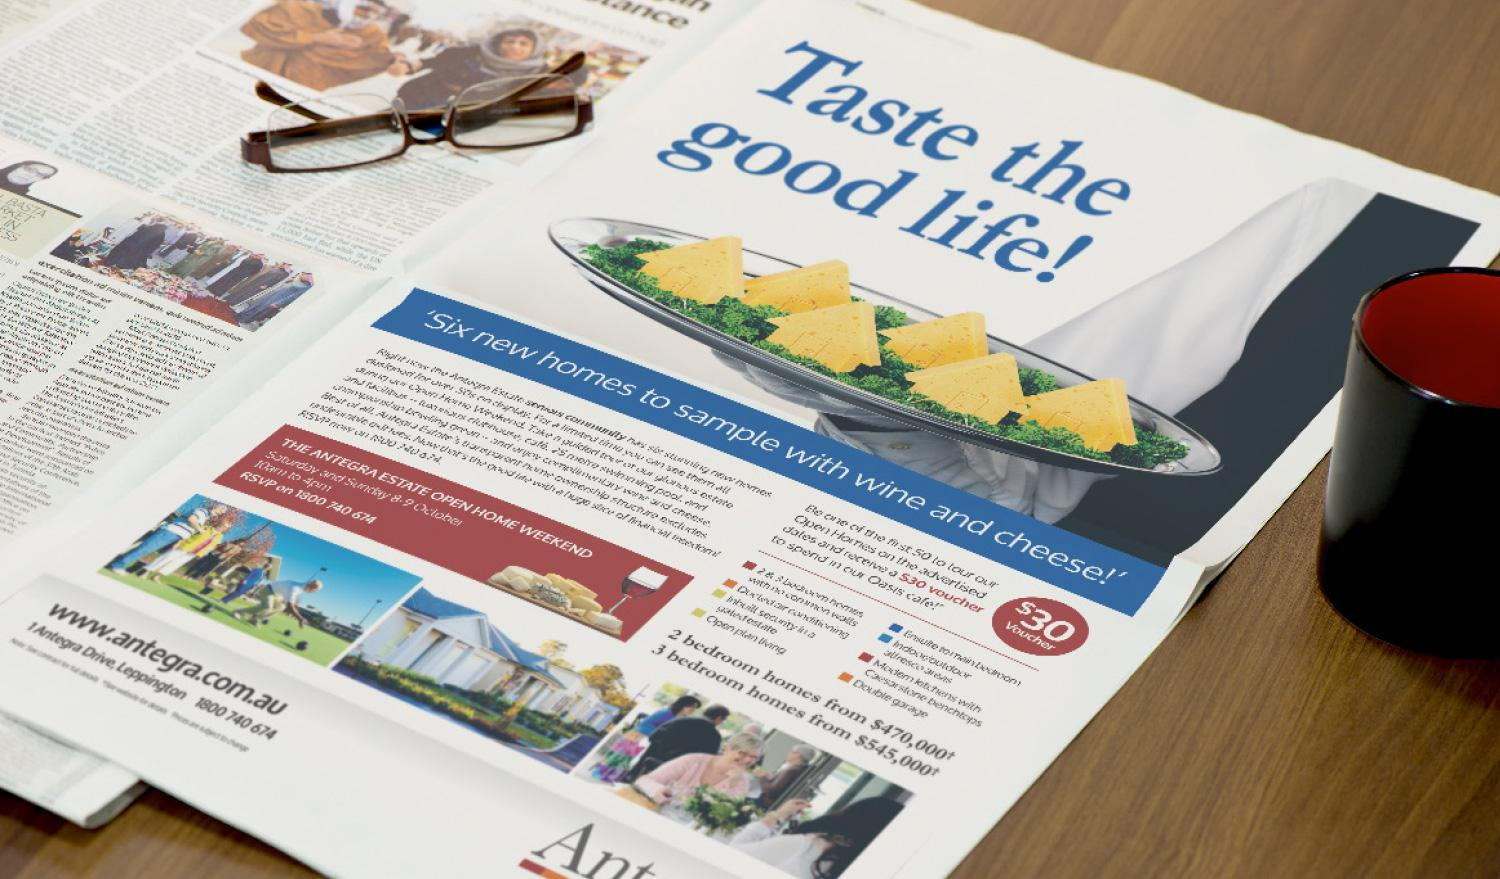 Antegra Estate – Taste the good life press ad